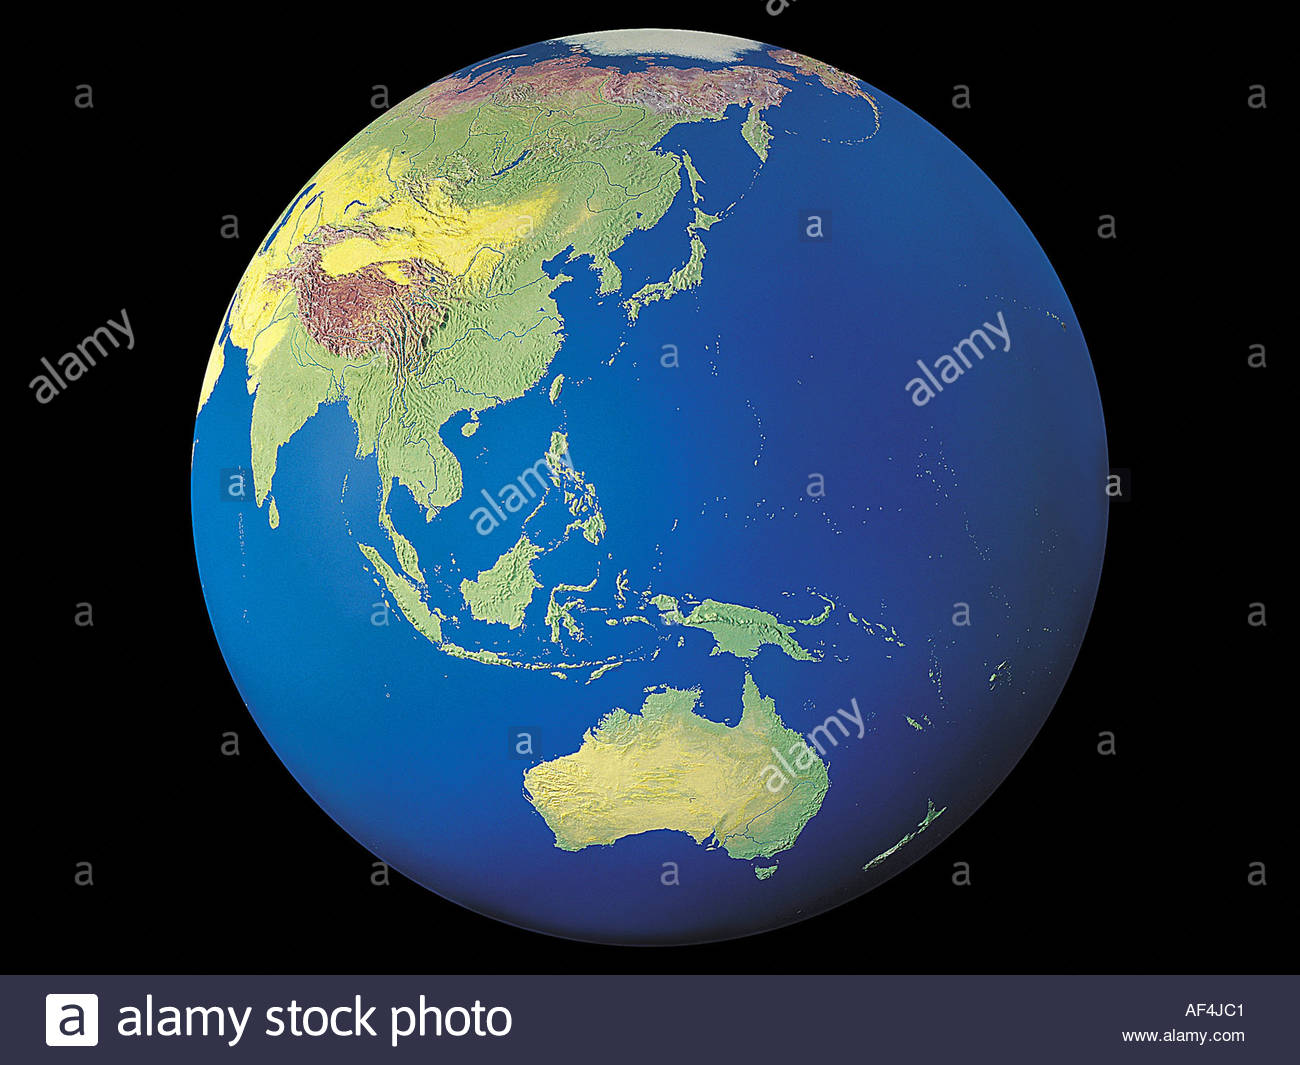 Globe globes map maps asia australia china indochina stock photo globe globes map maps asia australia china indochina gumiabroncs Gallery